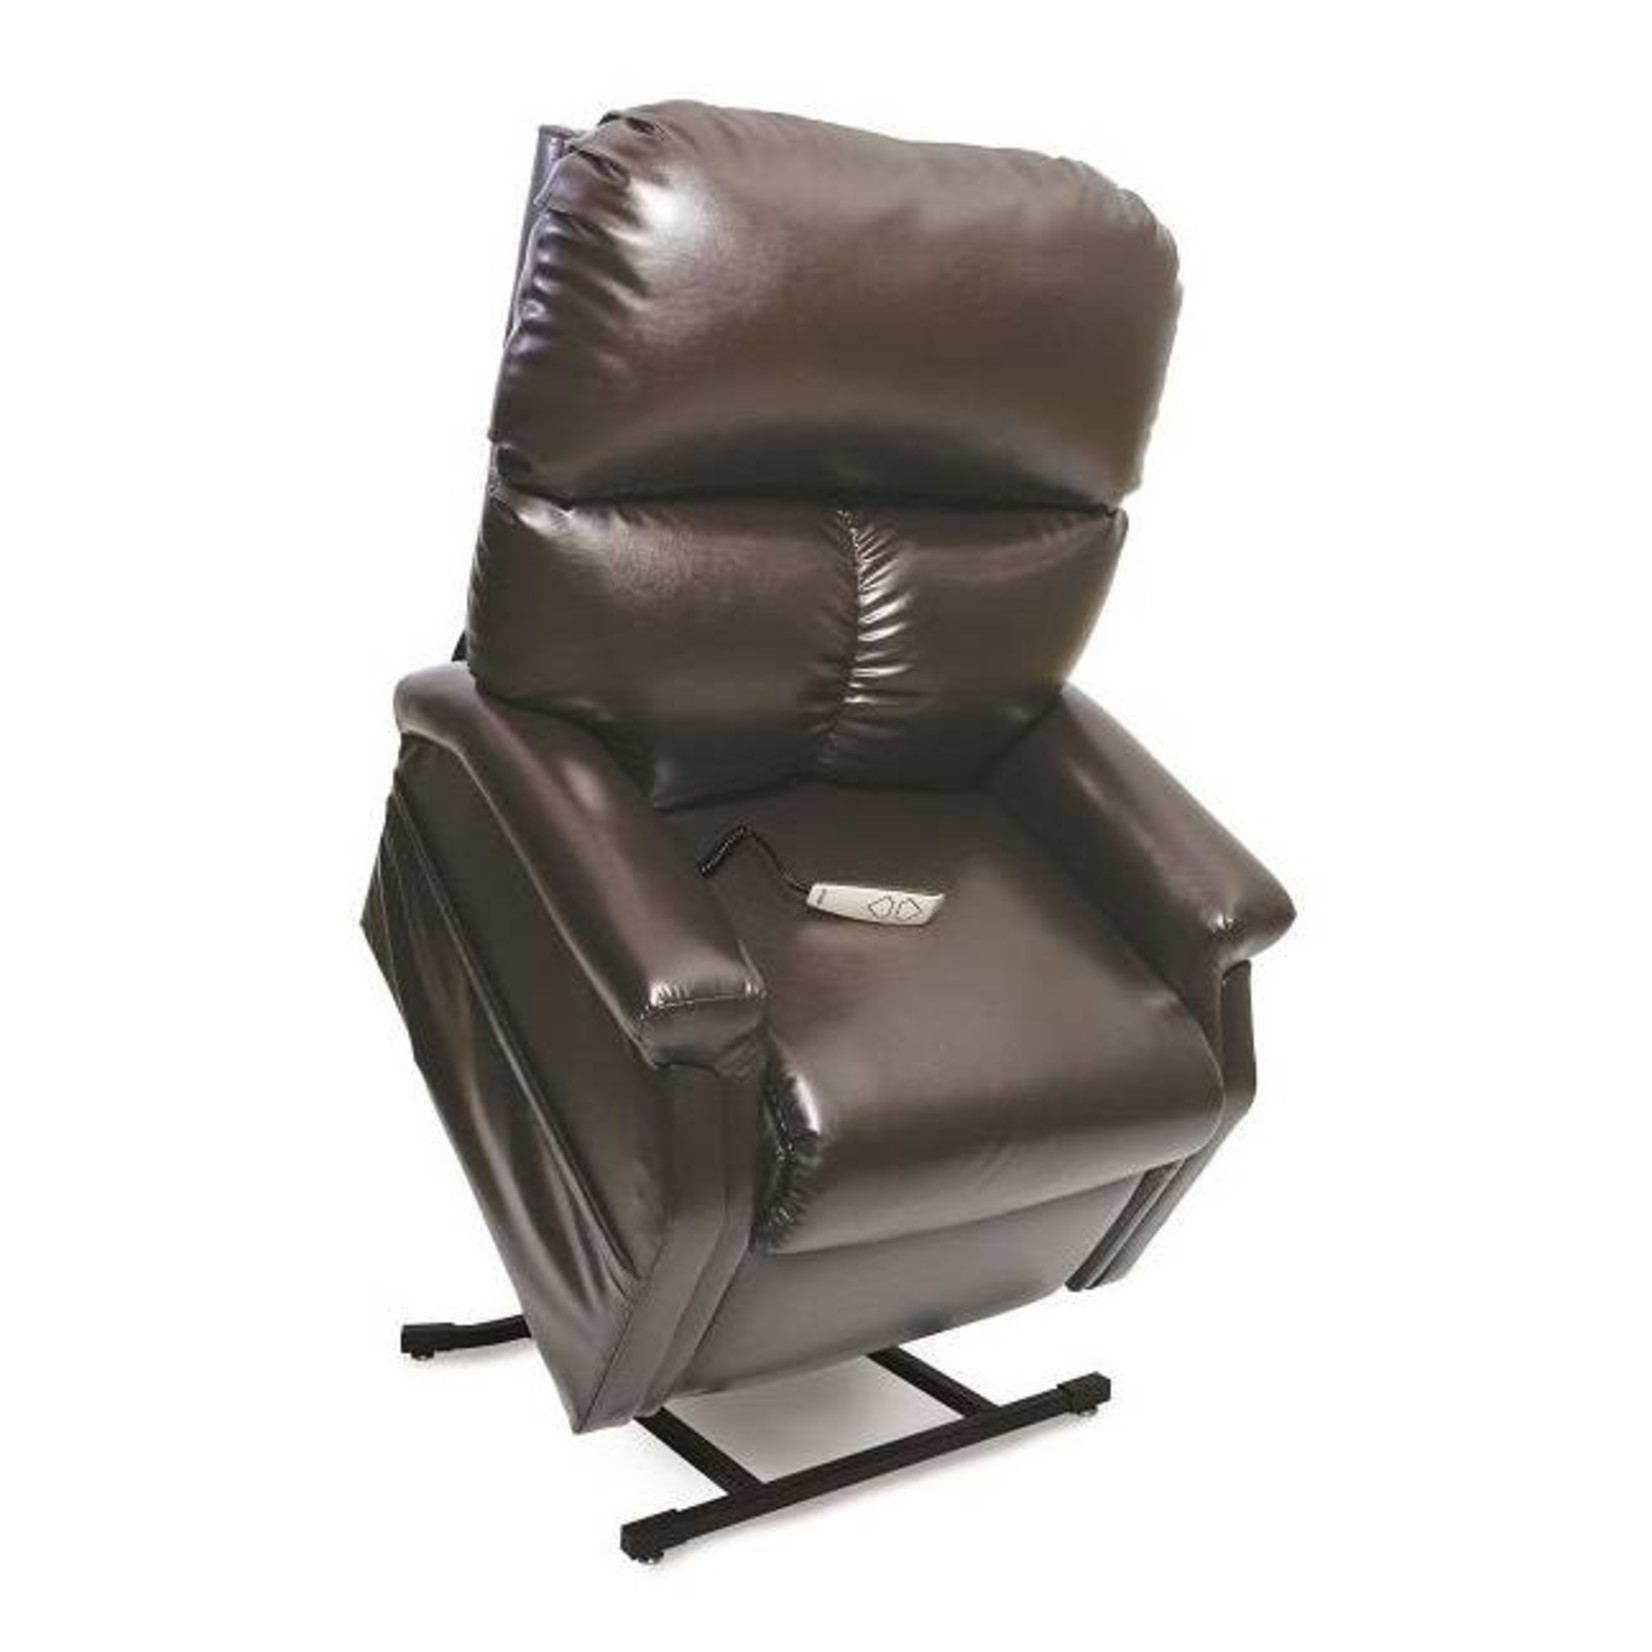 Lift Chair, Standard Single Motor - Rental Reservation in Eastern Palm Beach County